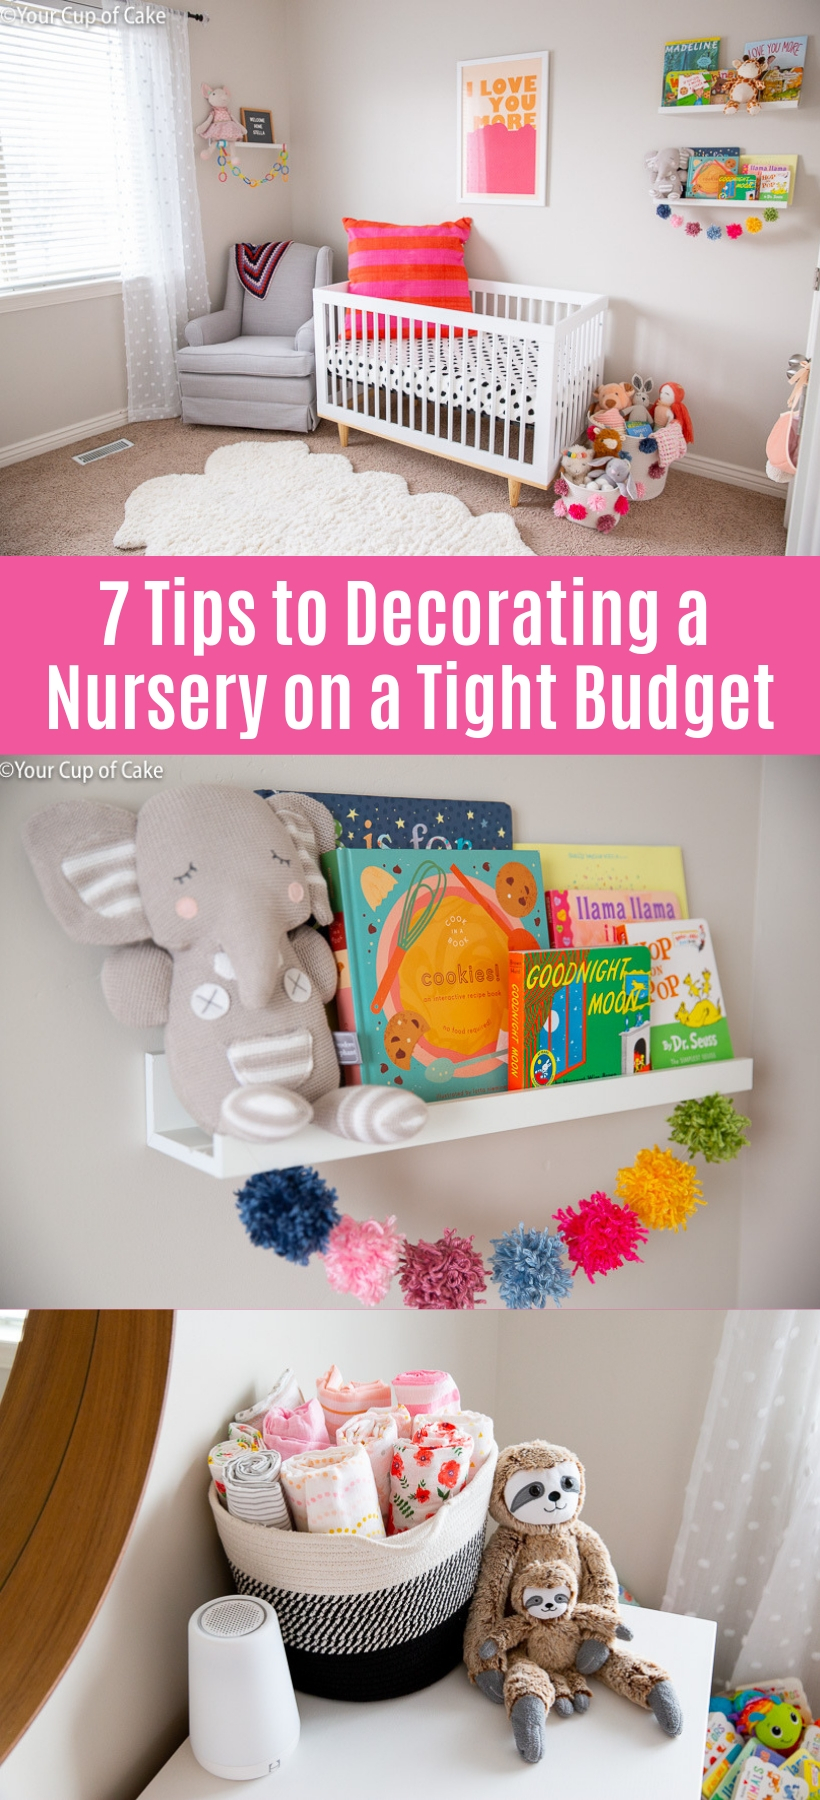 These tips are GREAT! How to Decorate a Nursery on a Budget